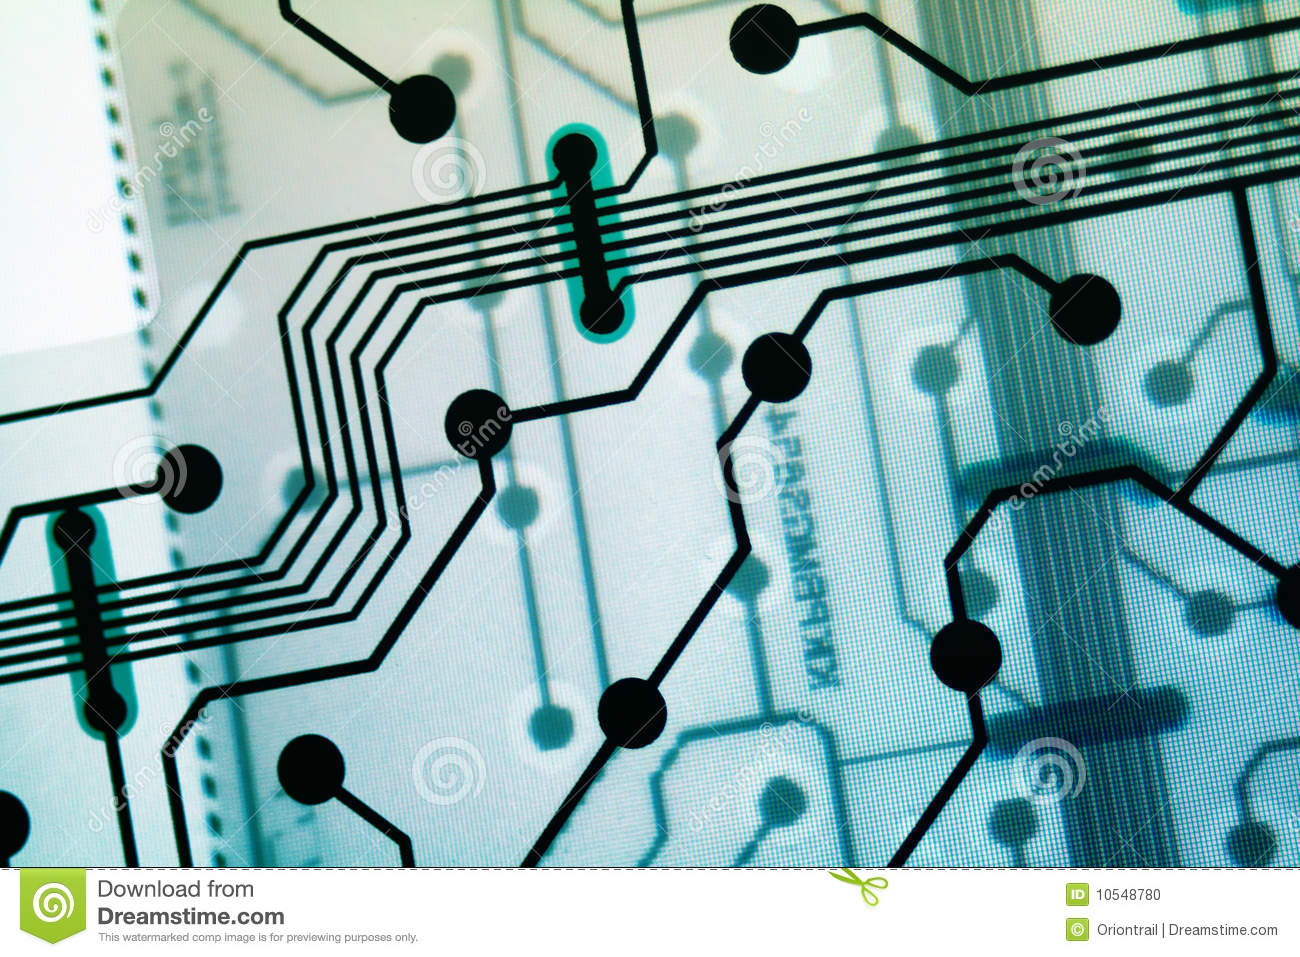 Transparent circuit board stock photo  Image of information - 10548780